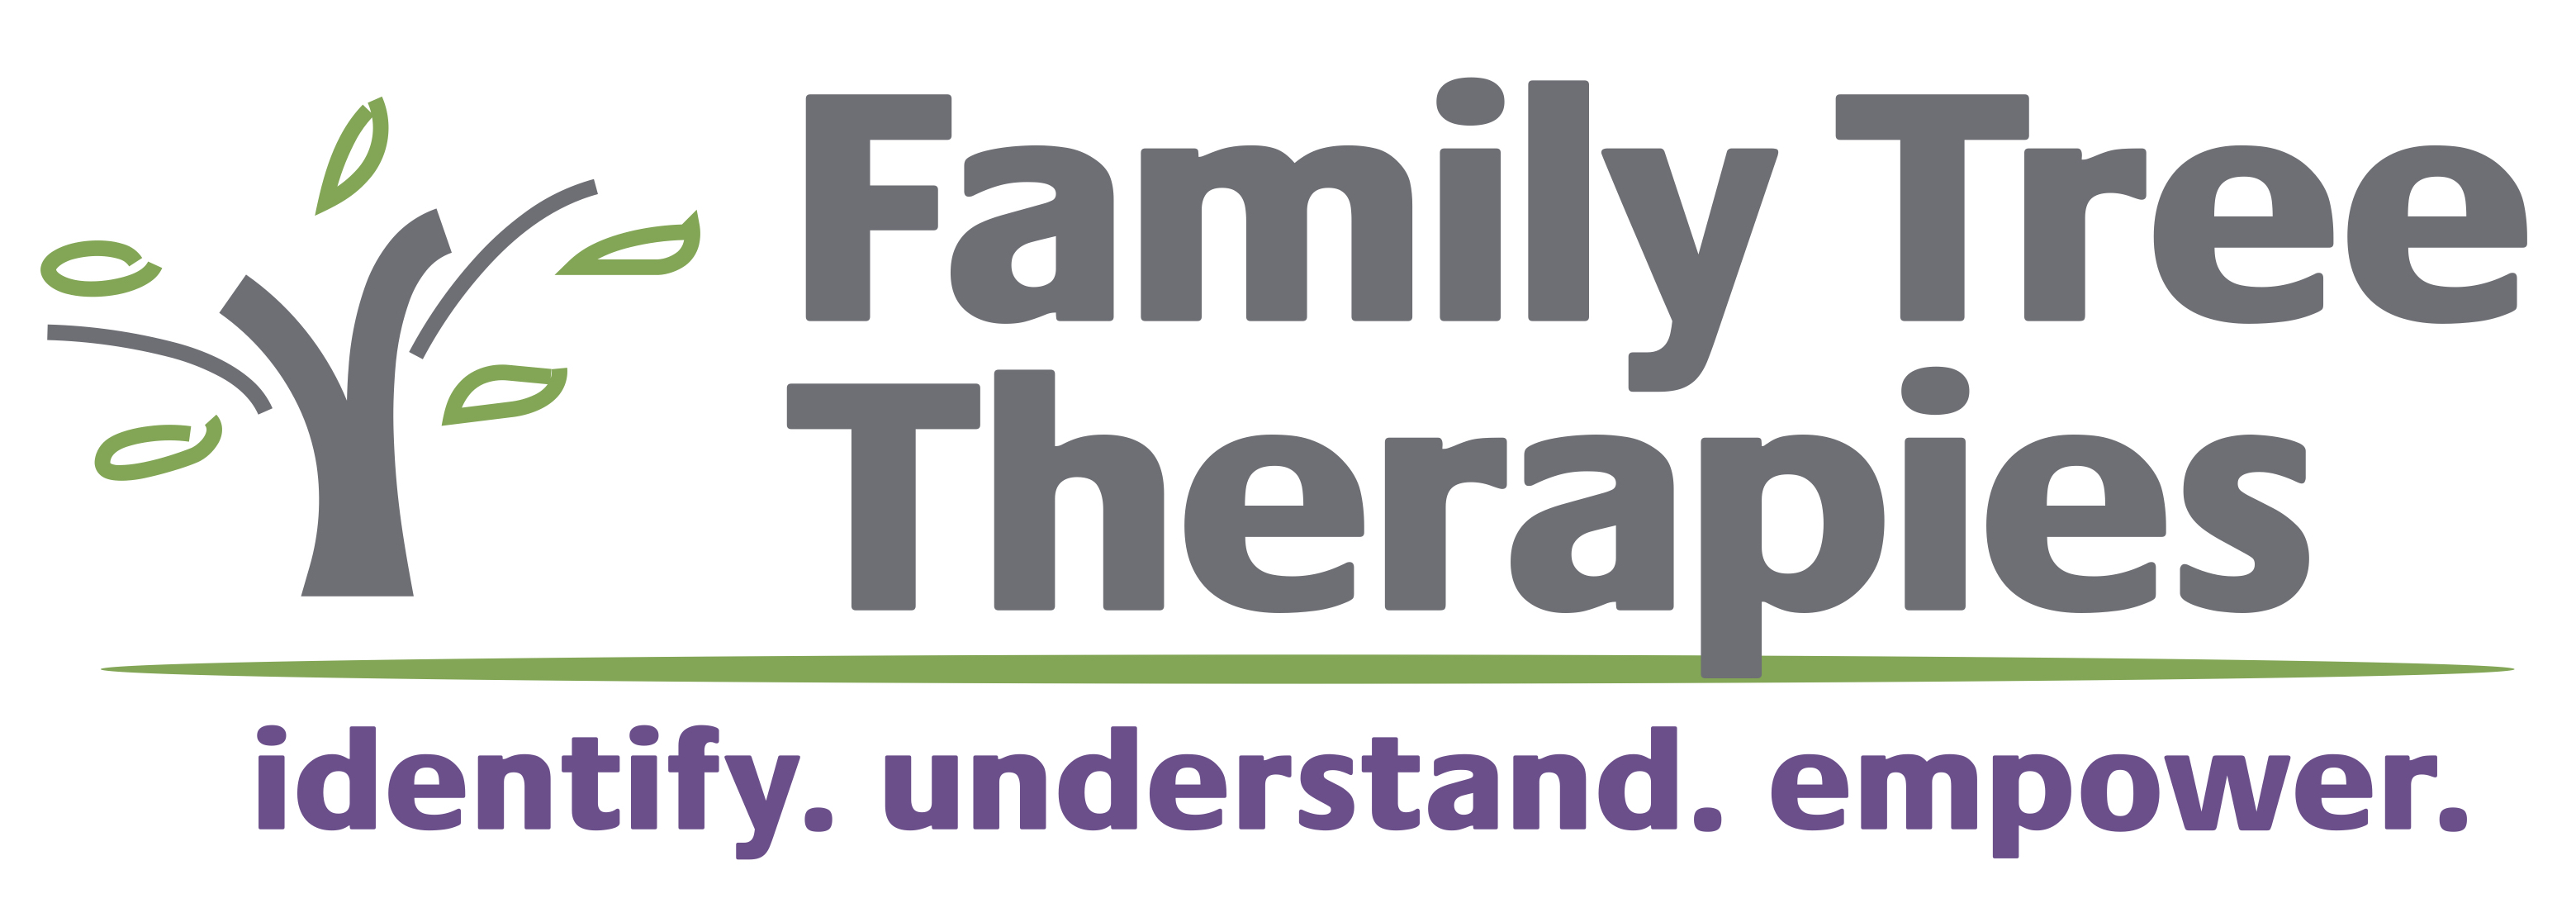 Family Tree Therapies